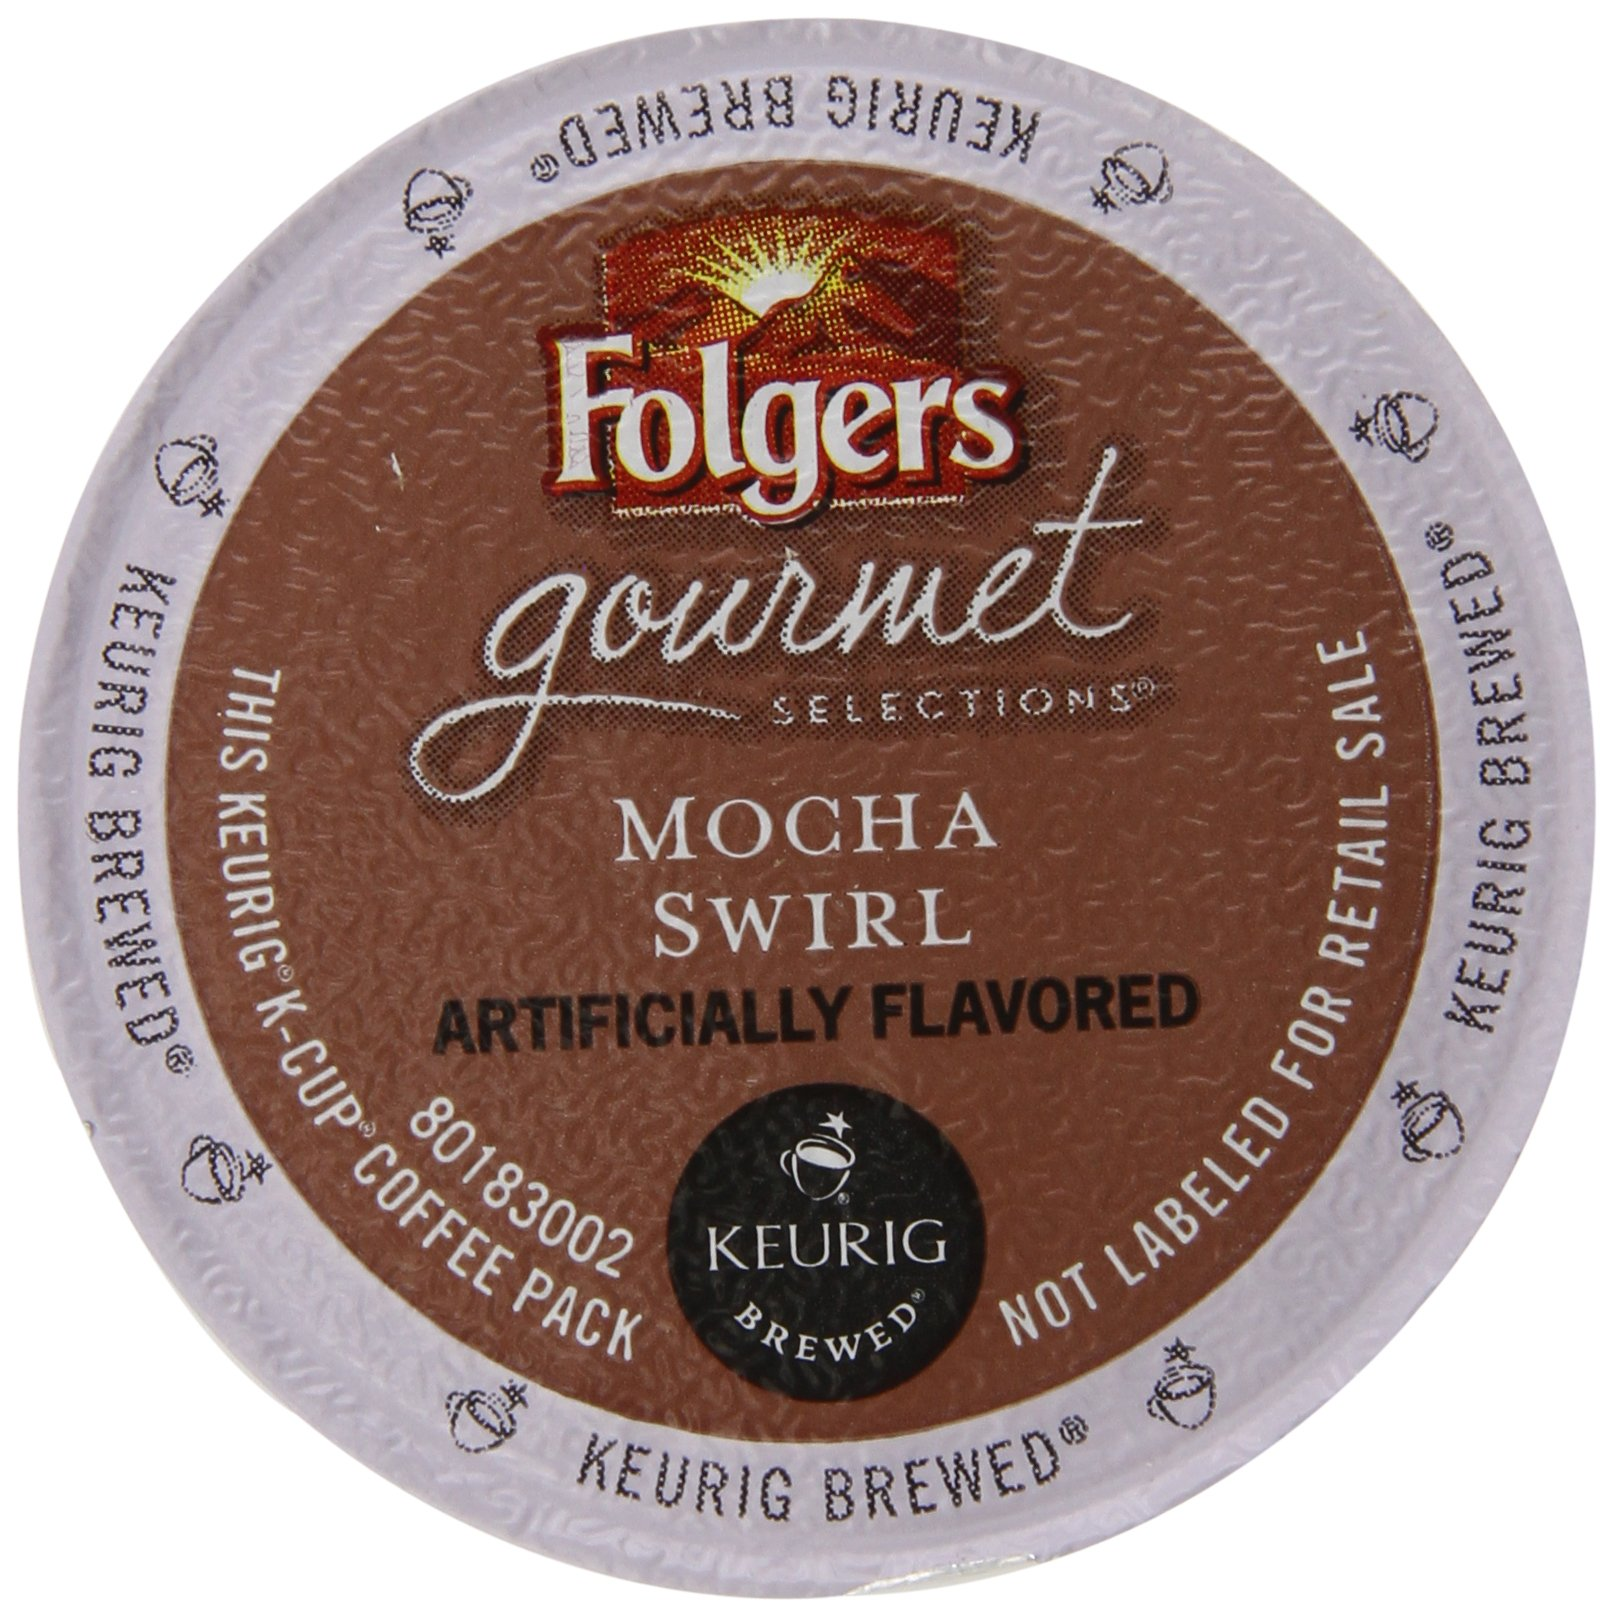 Folgers Gourmet Selections Countions Mocha Swirl Flavored Packs, 72 Count